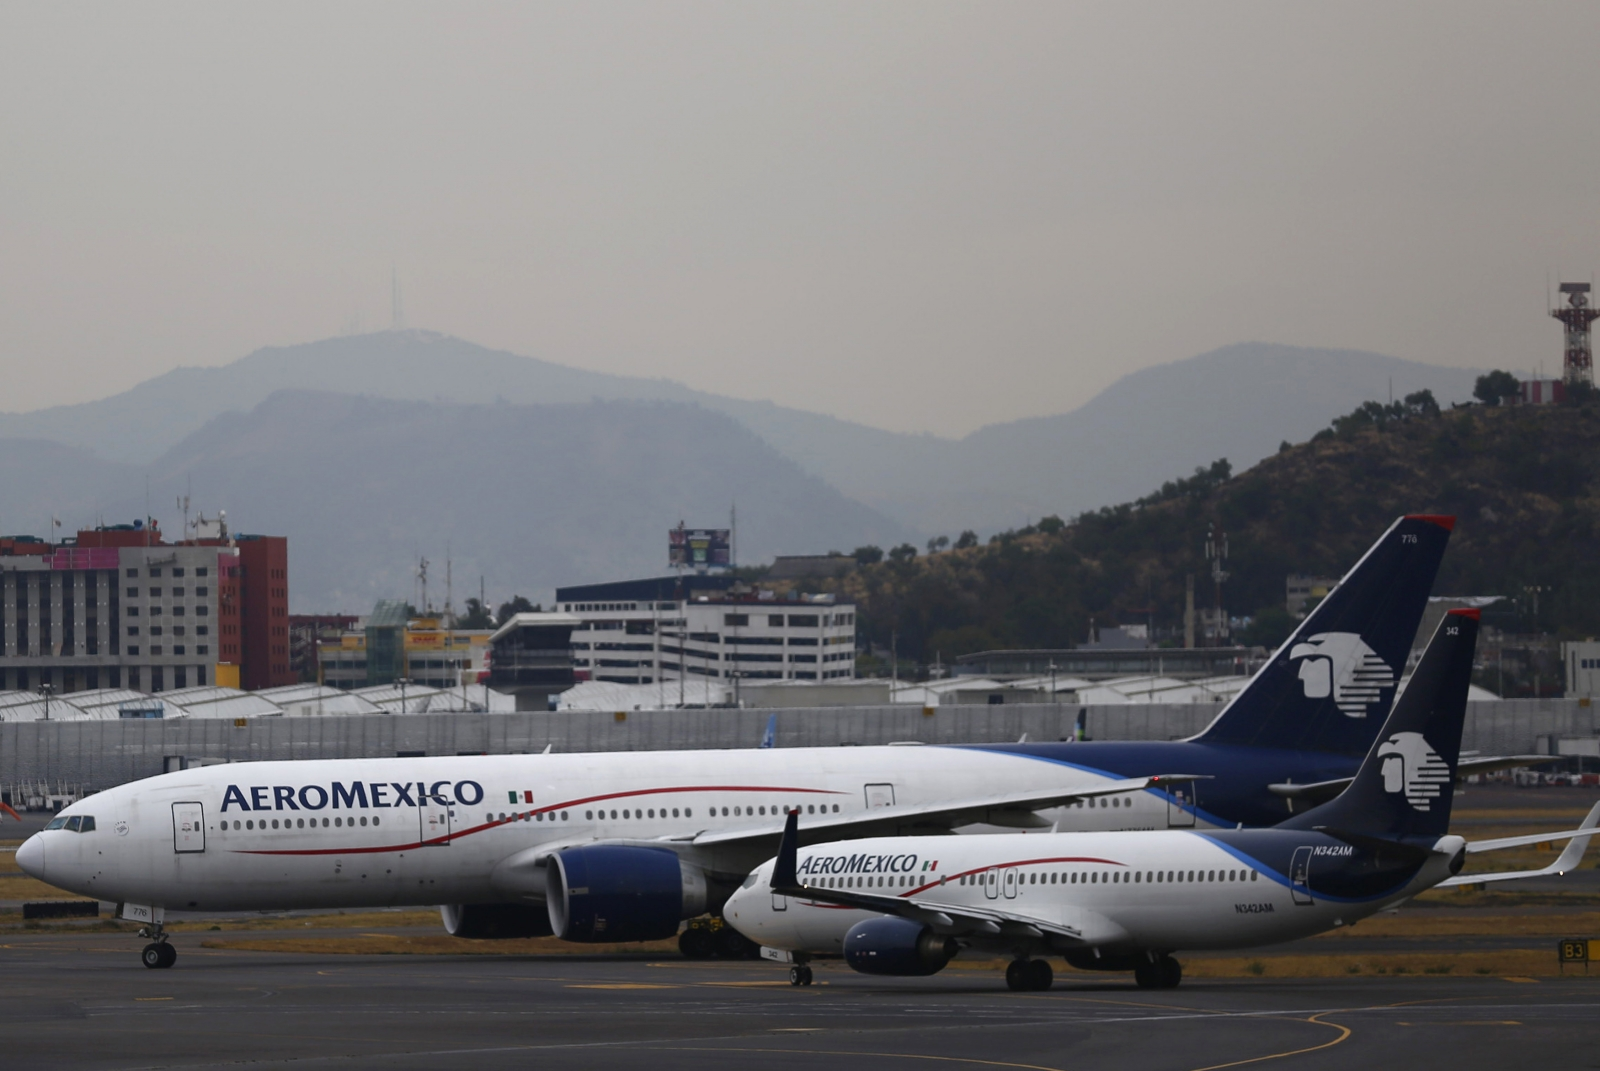 Aeromexico flight collides with utility truck